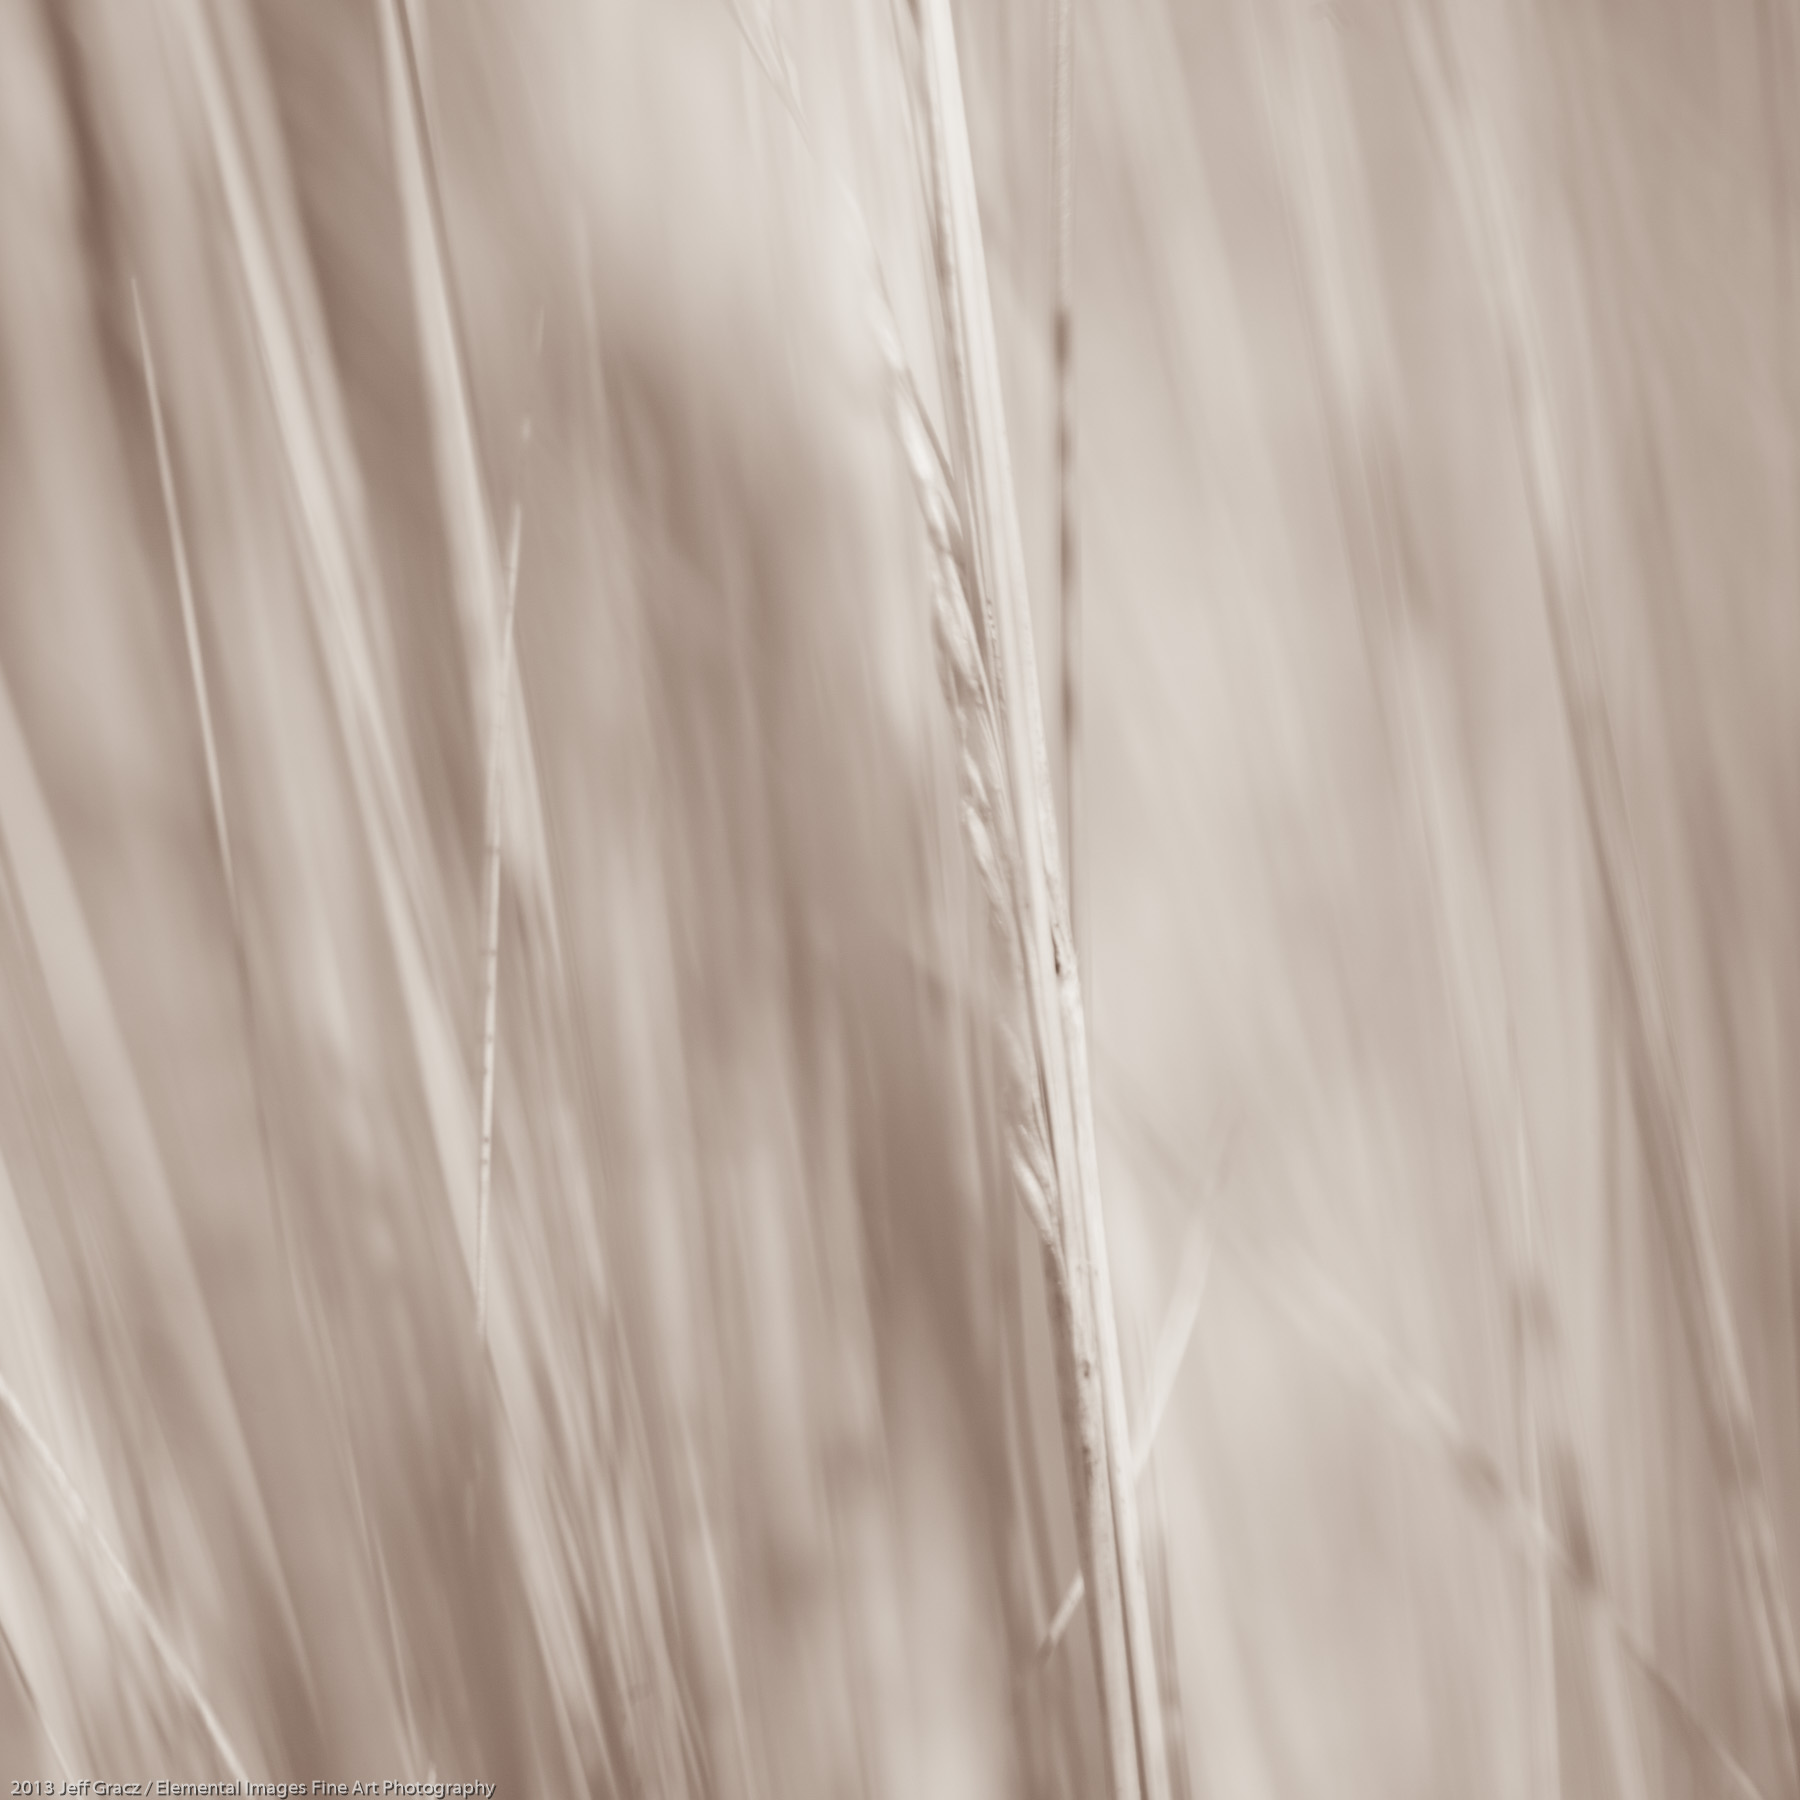 Grasses LIX | Portland | OR | USA - © 2013 Jeff Gracz / Elemental Images Fine Art Photography - All Rights Reserved Worldwide